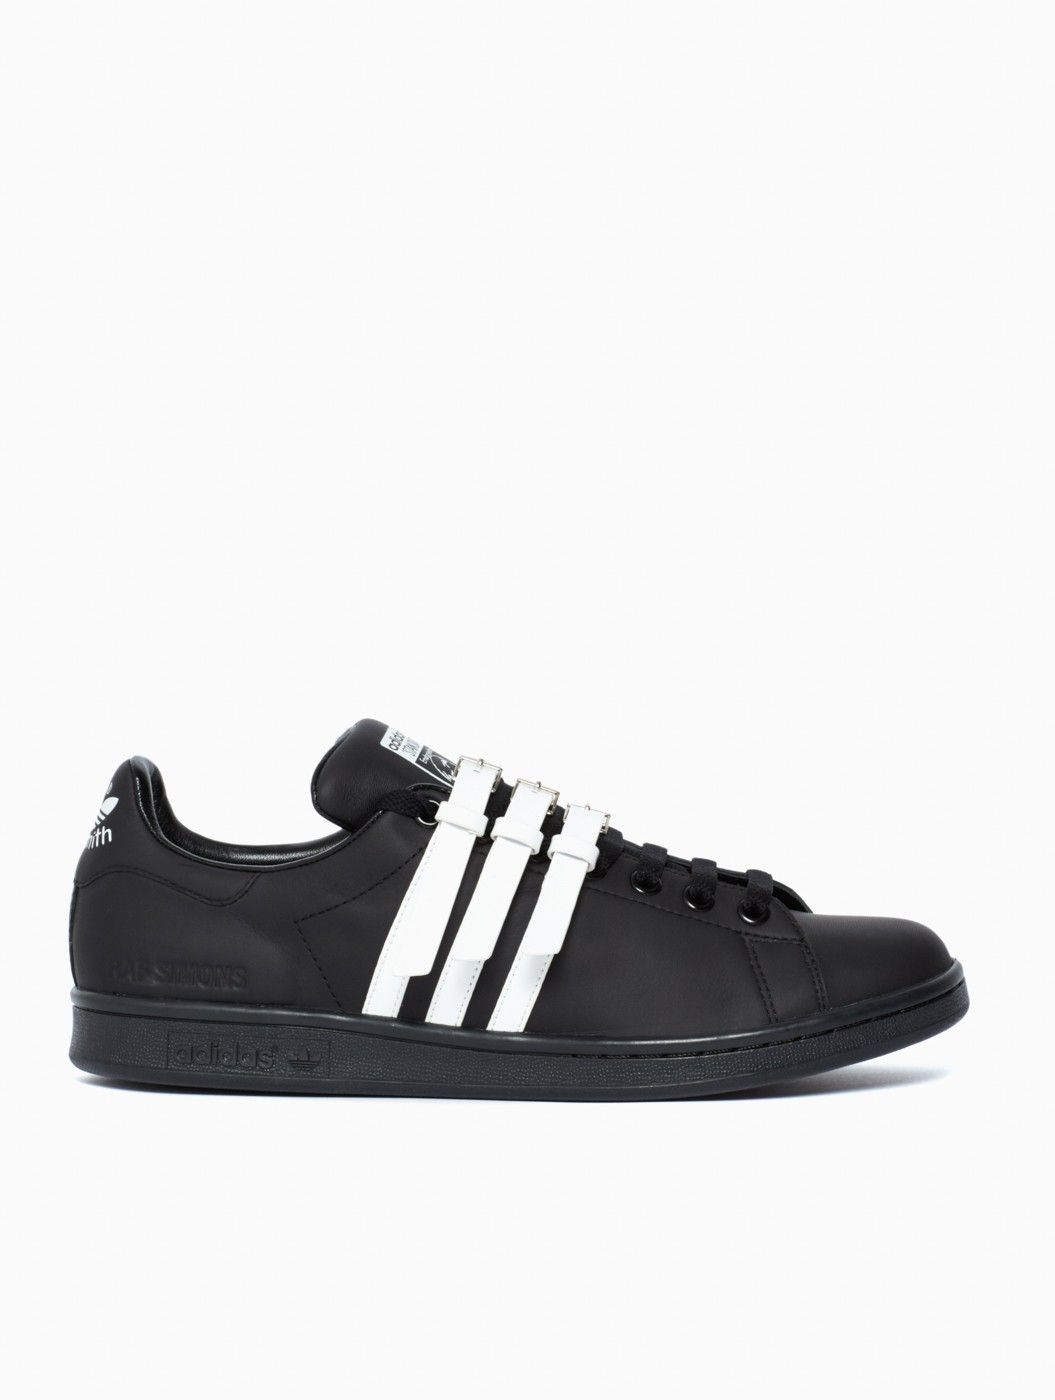 Stan Smith Strap sneakers from S/S2016 Raf Simons x Adidas